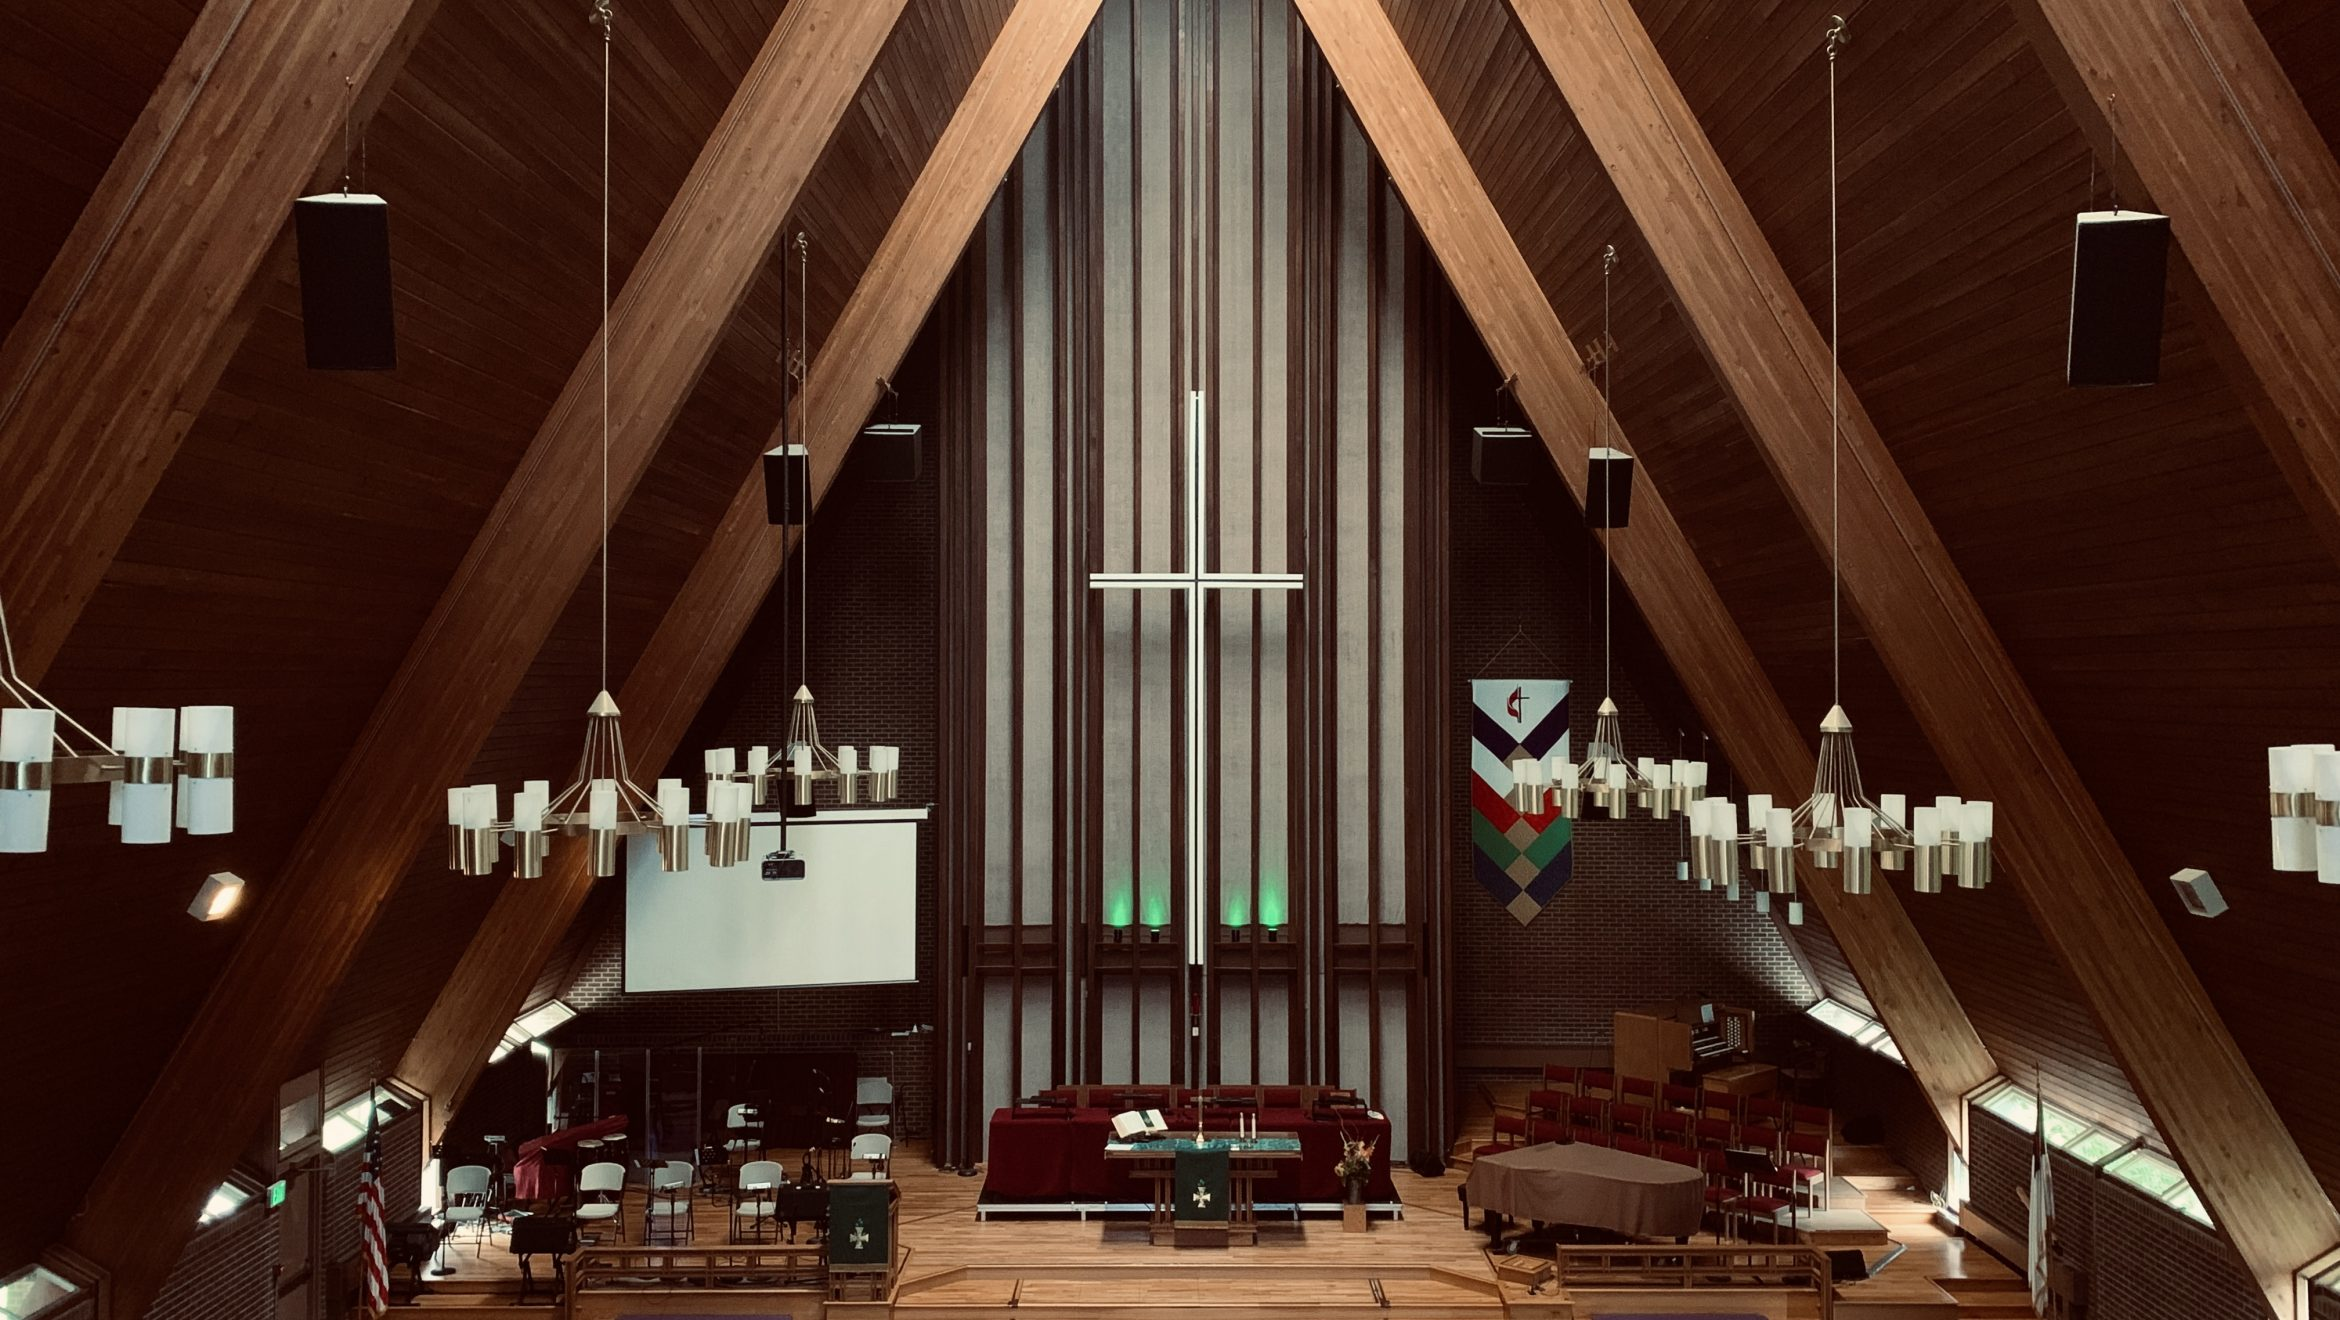 Are you yearning to get back into the church for worship?